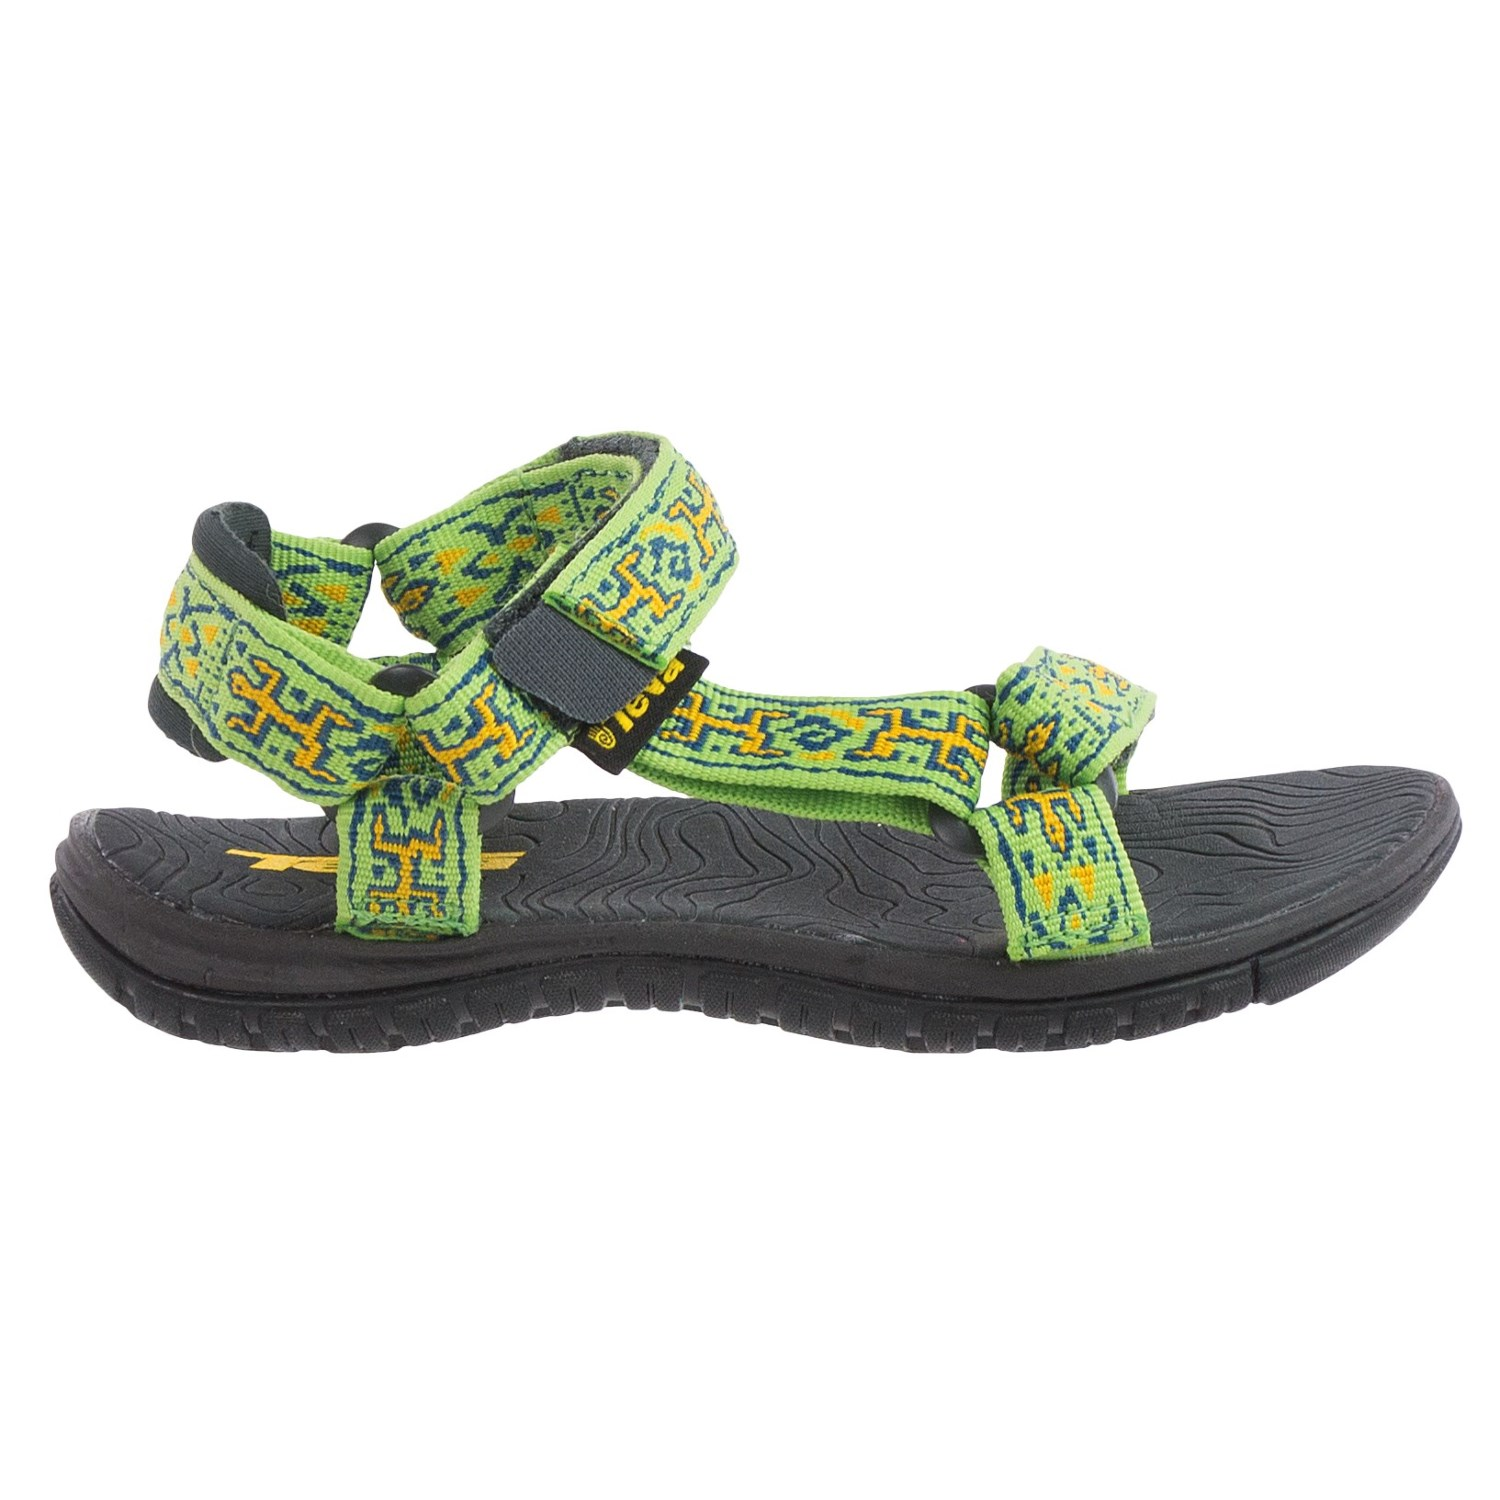 Teva Hurricane 3 Sandals (For Toddlers) - Save 47%